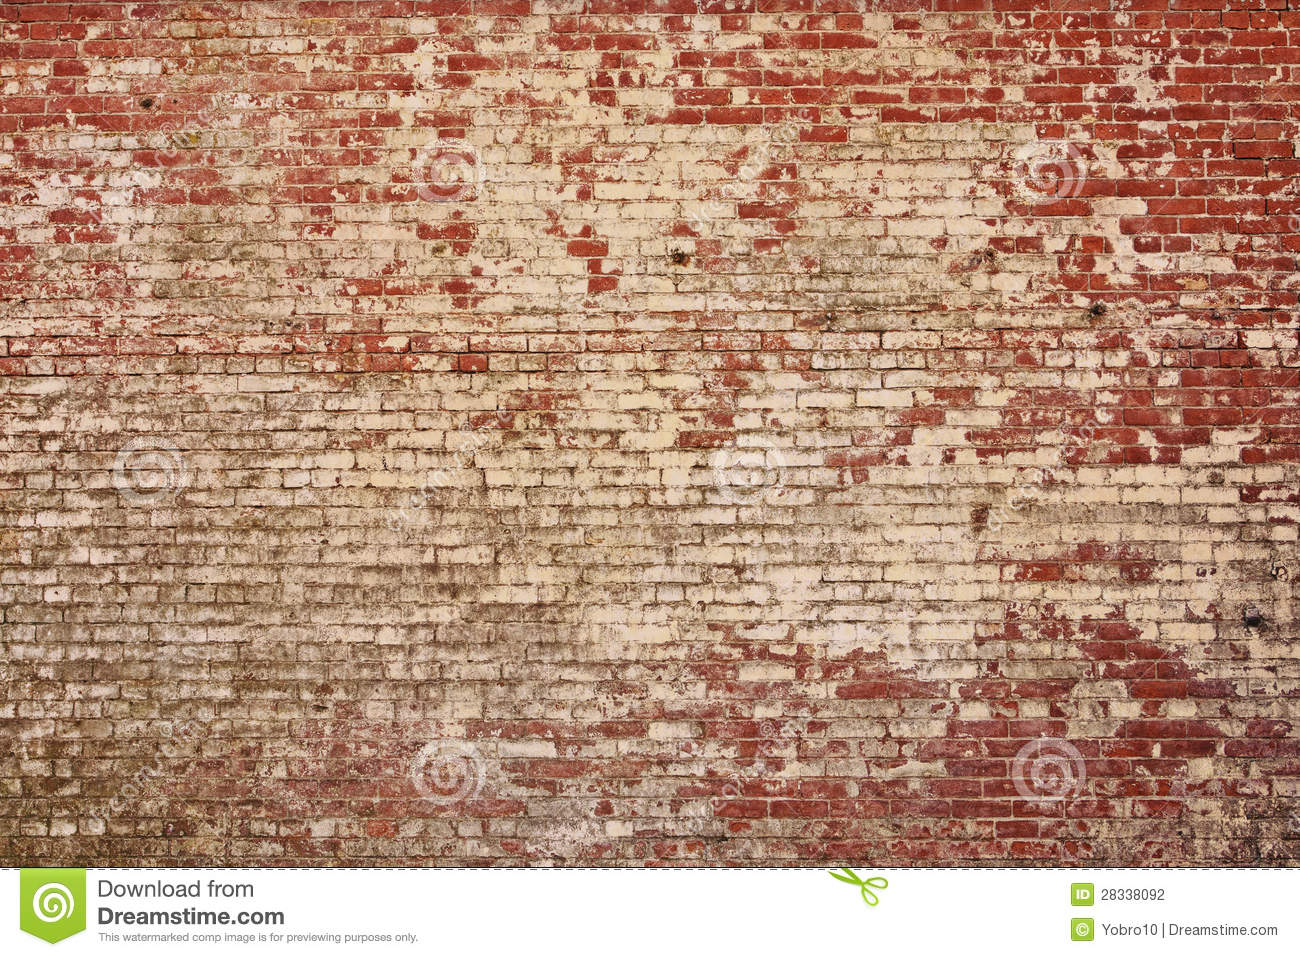 Vintage Style Old Red Brick Wall  Lots Of Detail And Texture In This